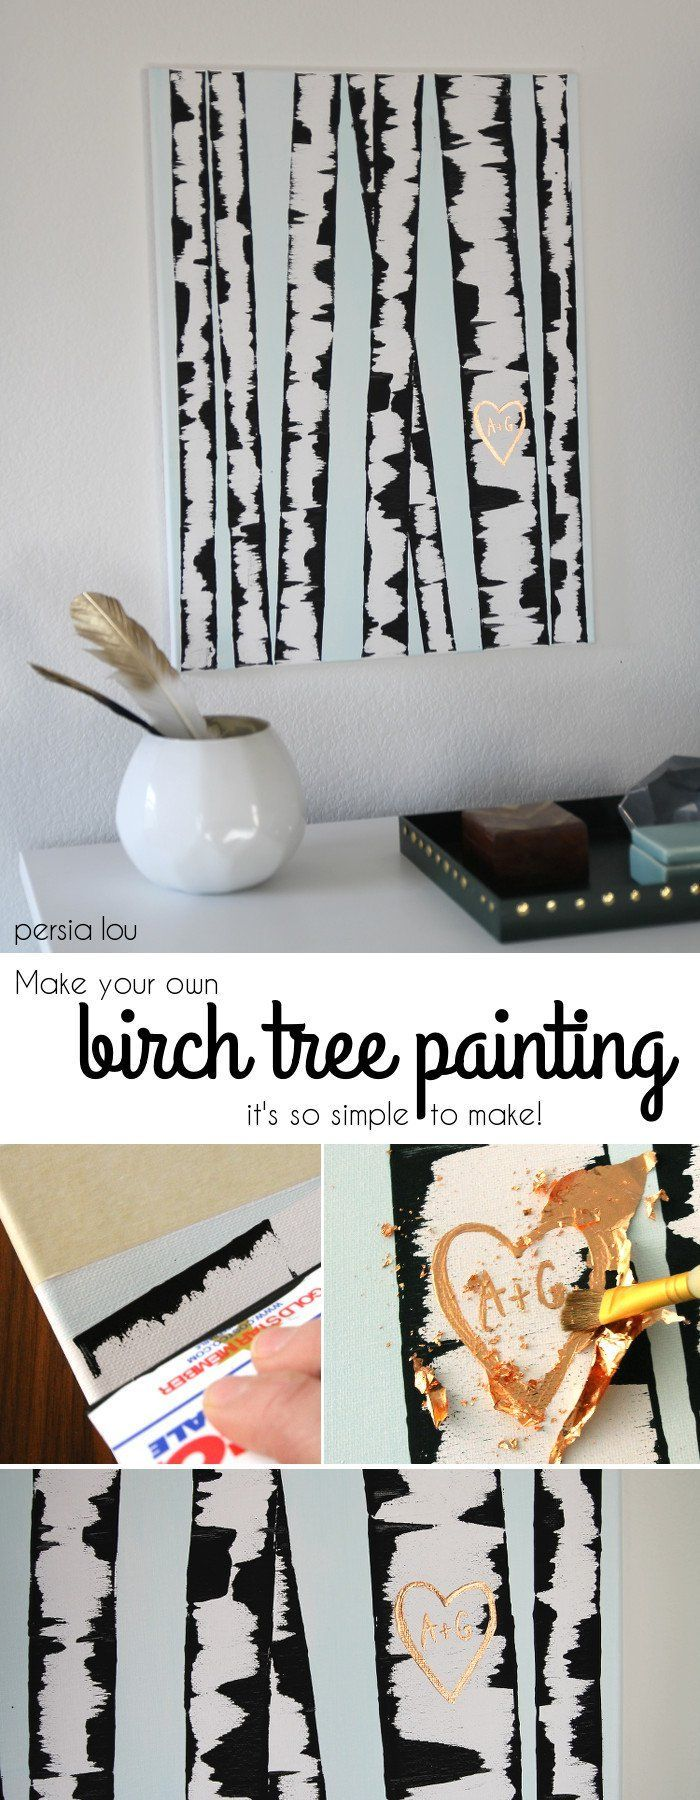 Easy Wall Art Ideas Easy diy crafts Diy wall art and Diy wall